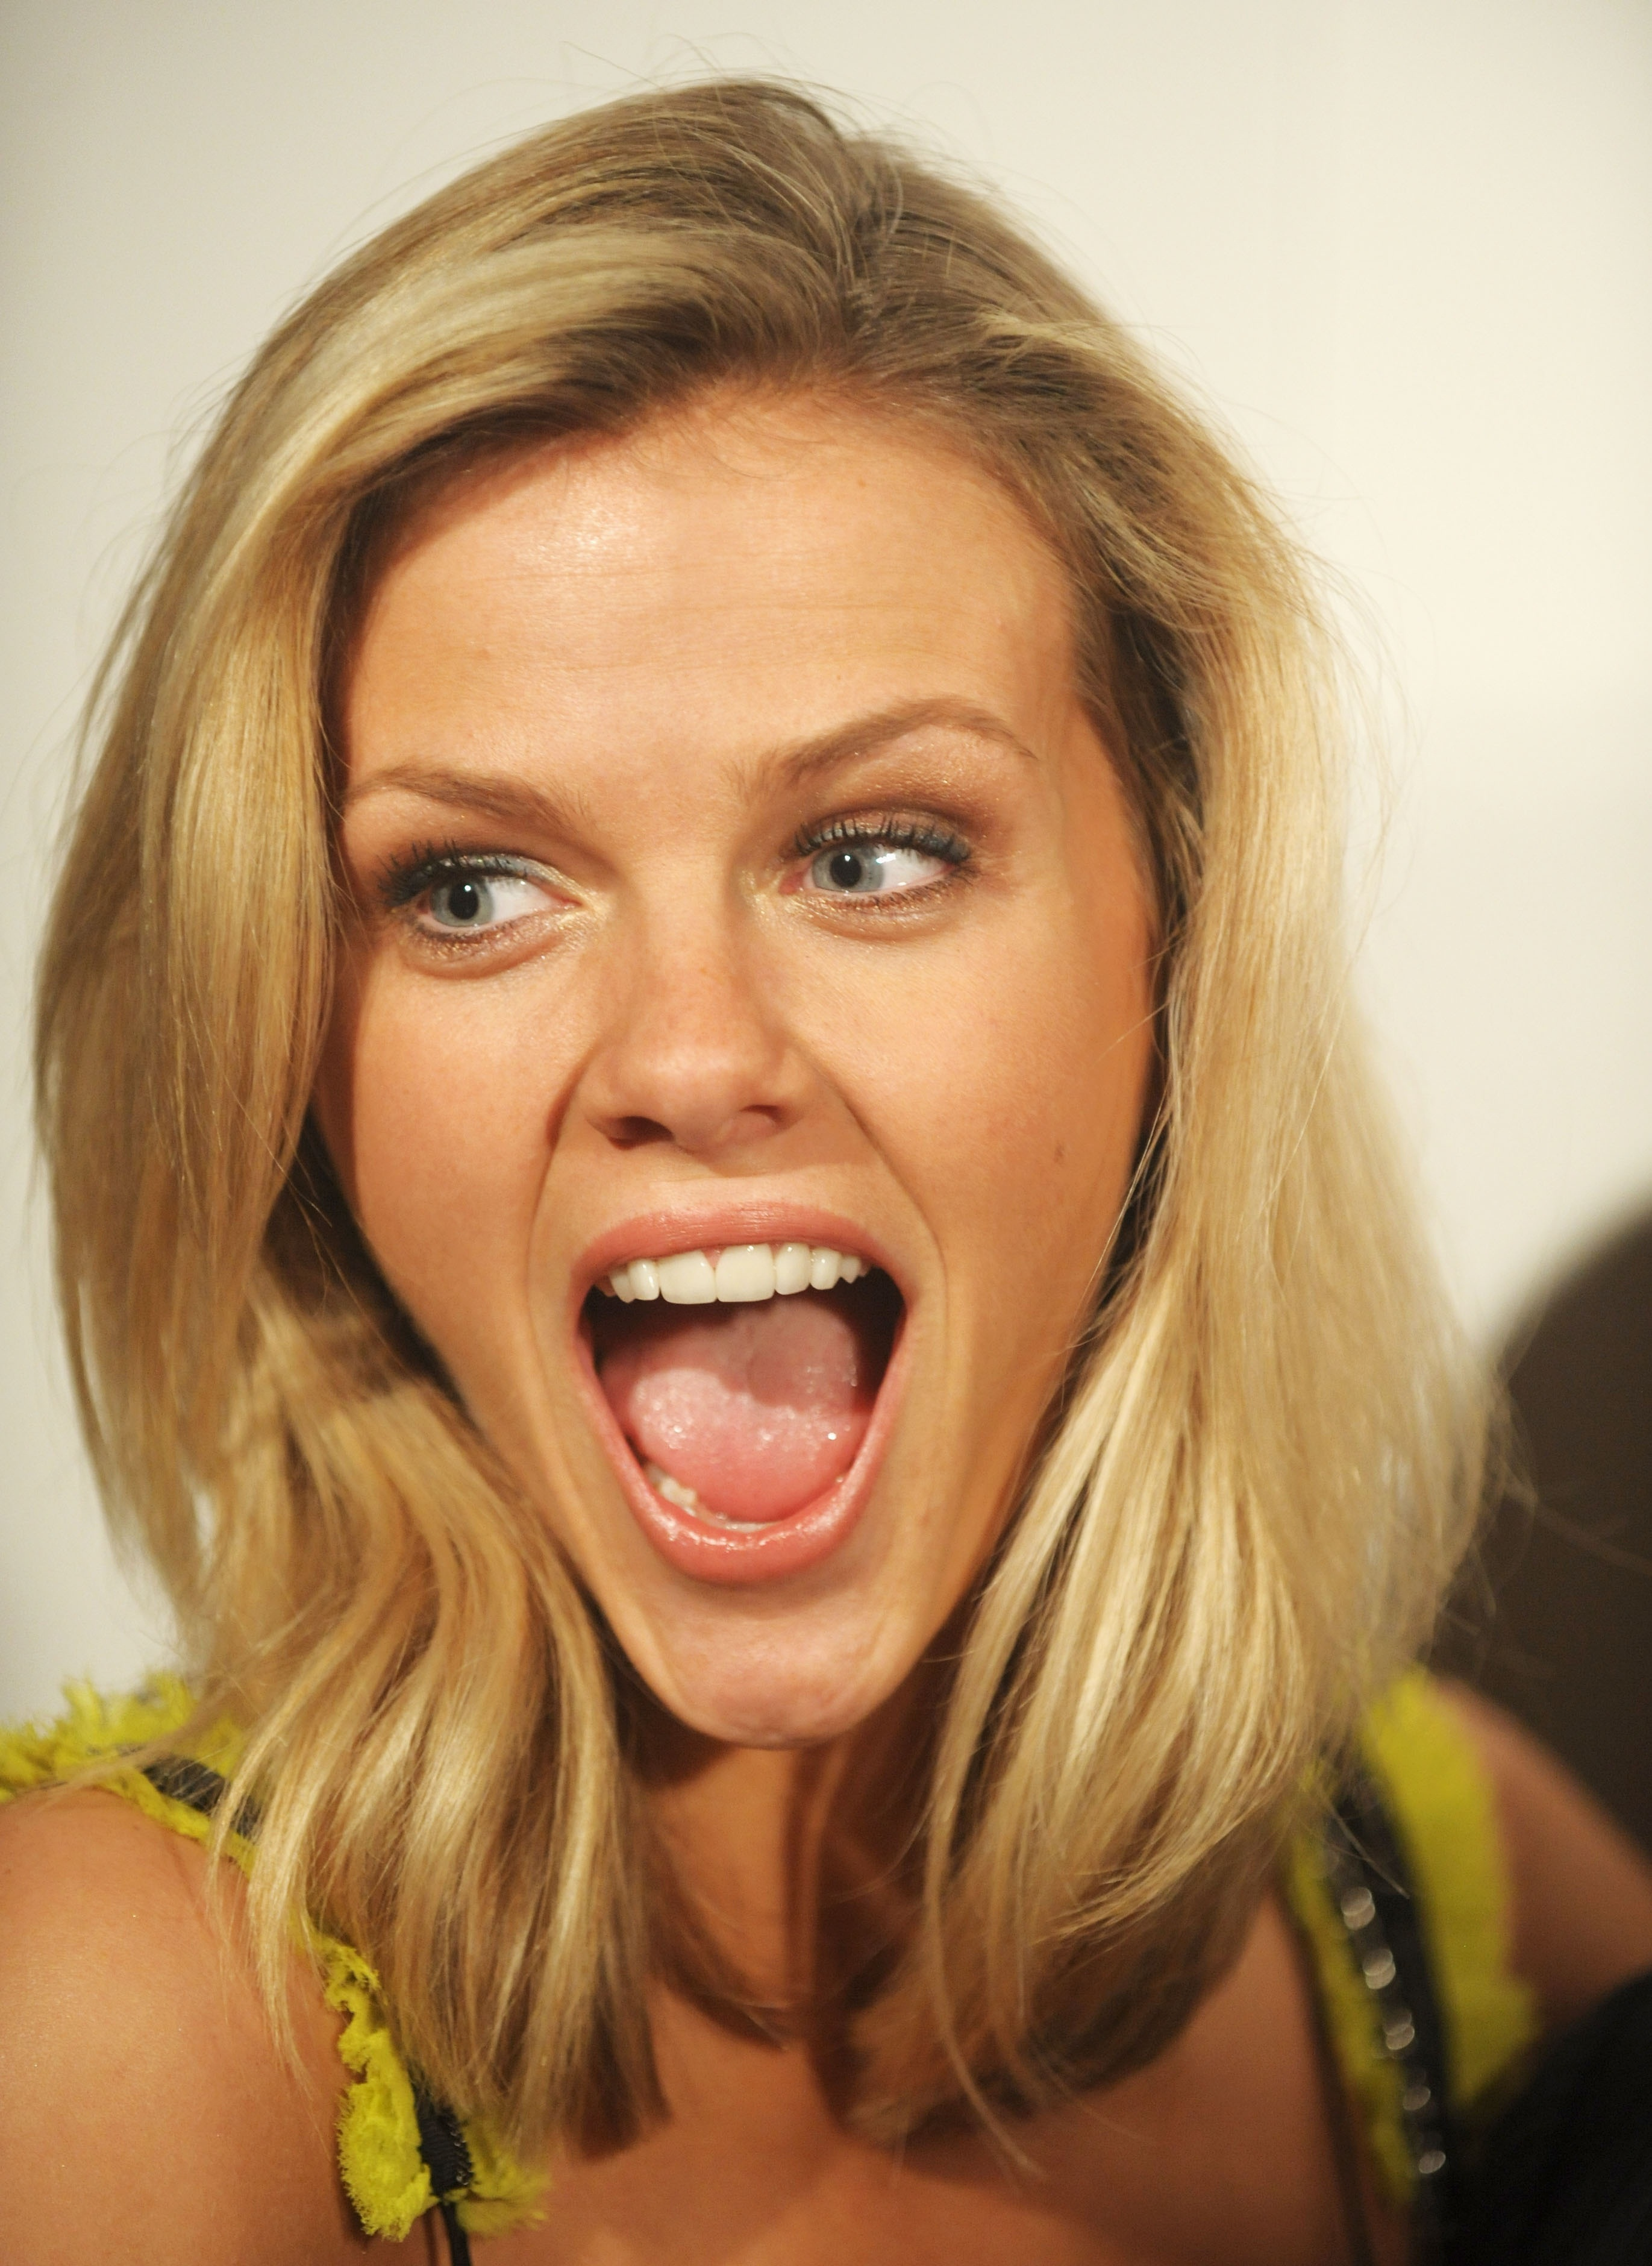 Brooklyn Decker - Images Gallery